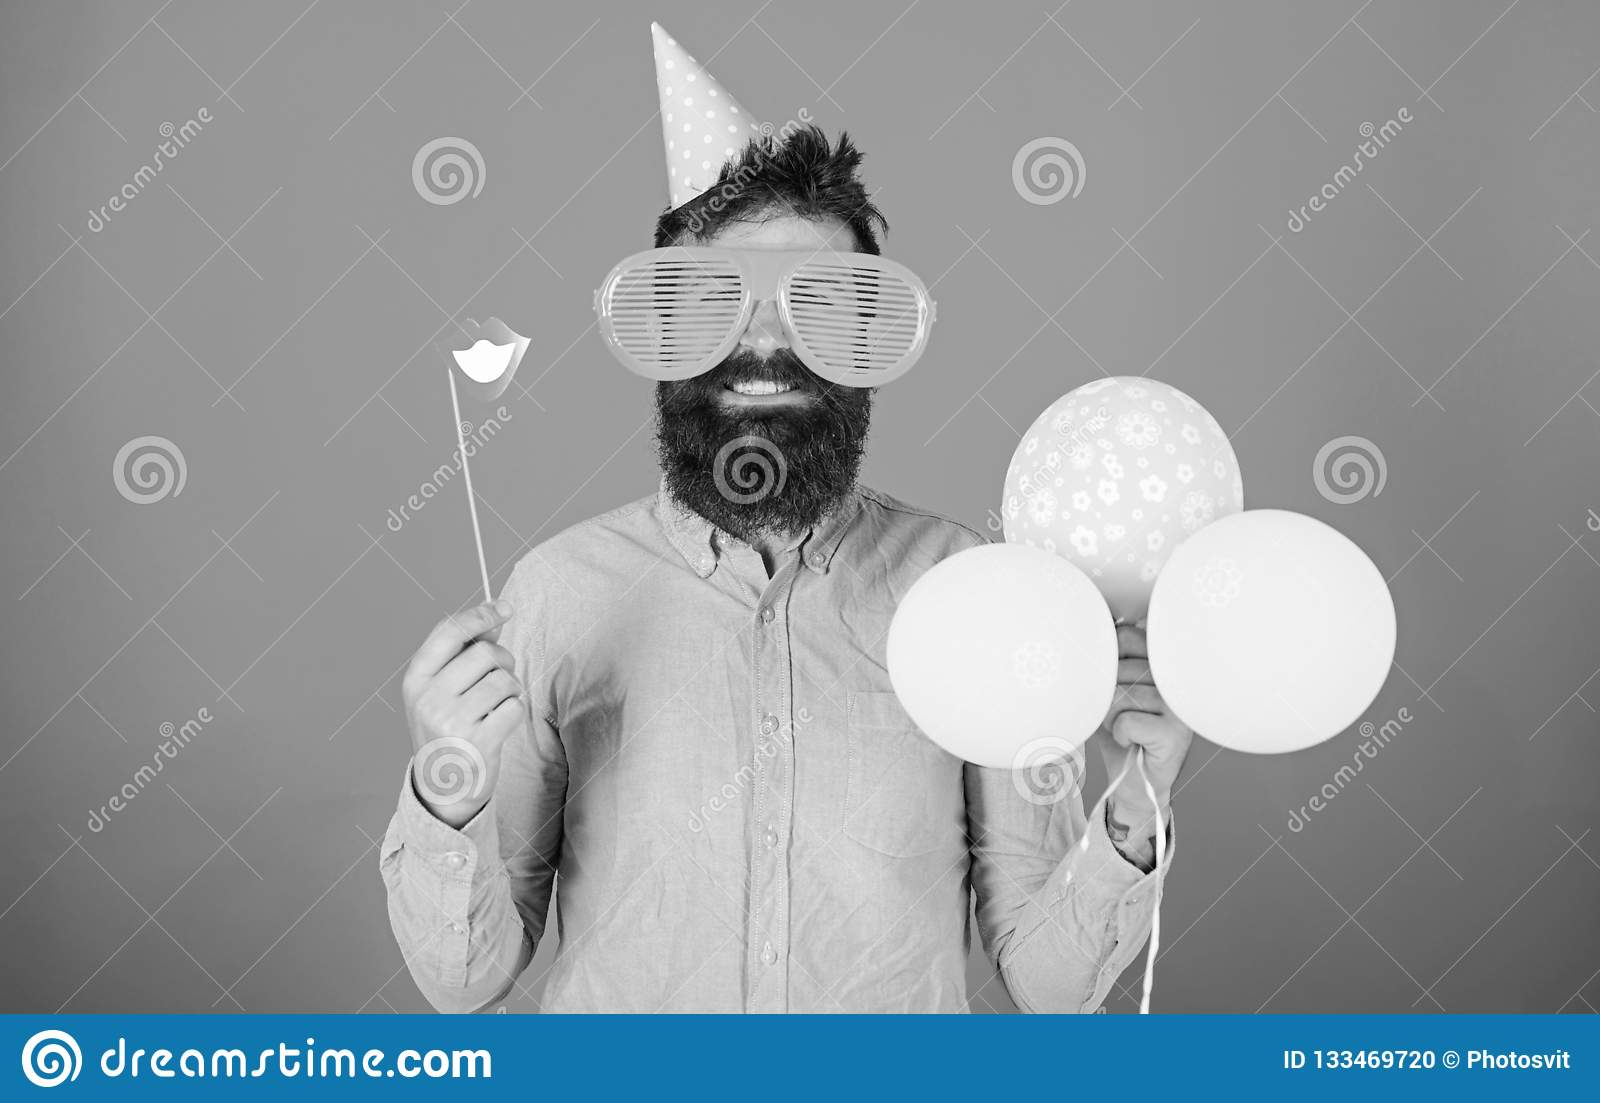 Bearded man with party accessories, surprise concept. Man with paper lips, enormous crazy glasses and balloons isolated